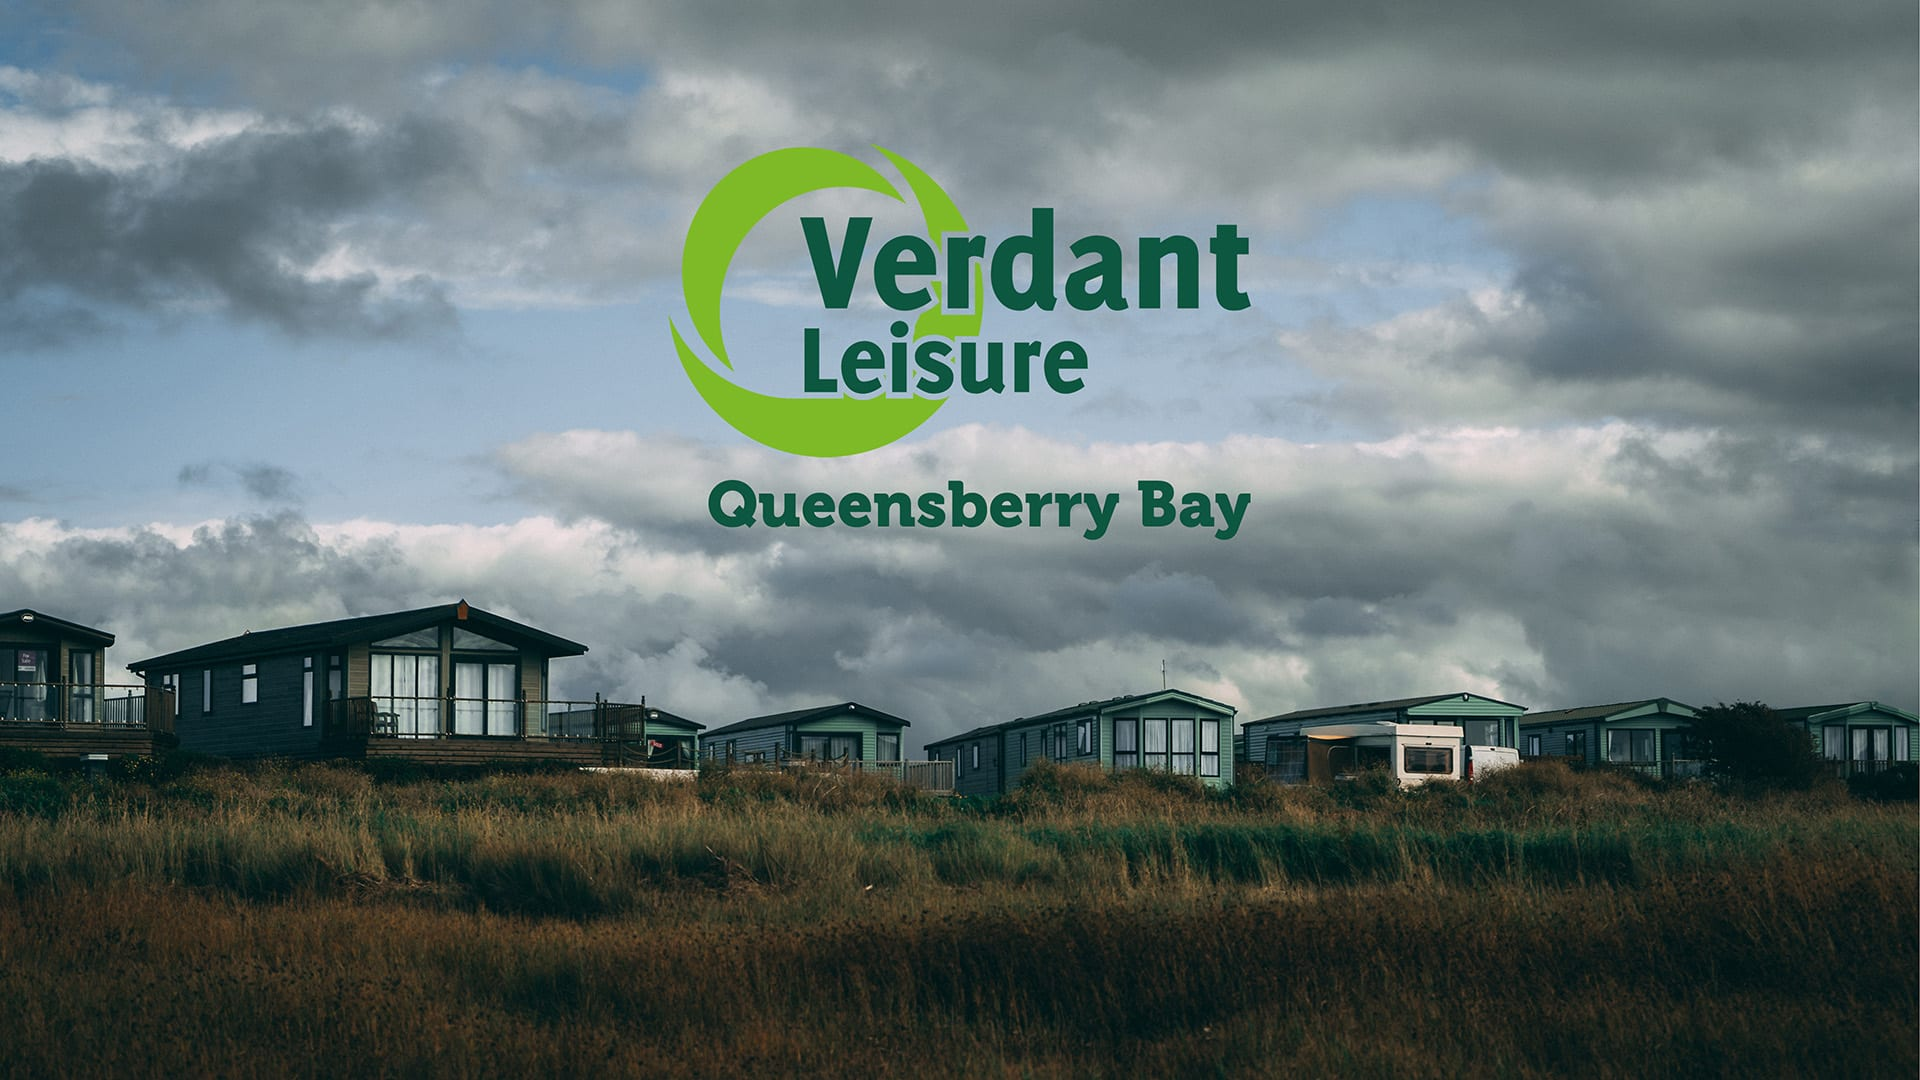 Verdant Leisure Promo Video Bee Bold Films